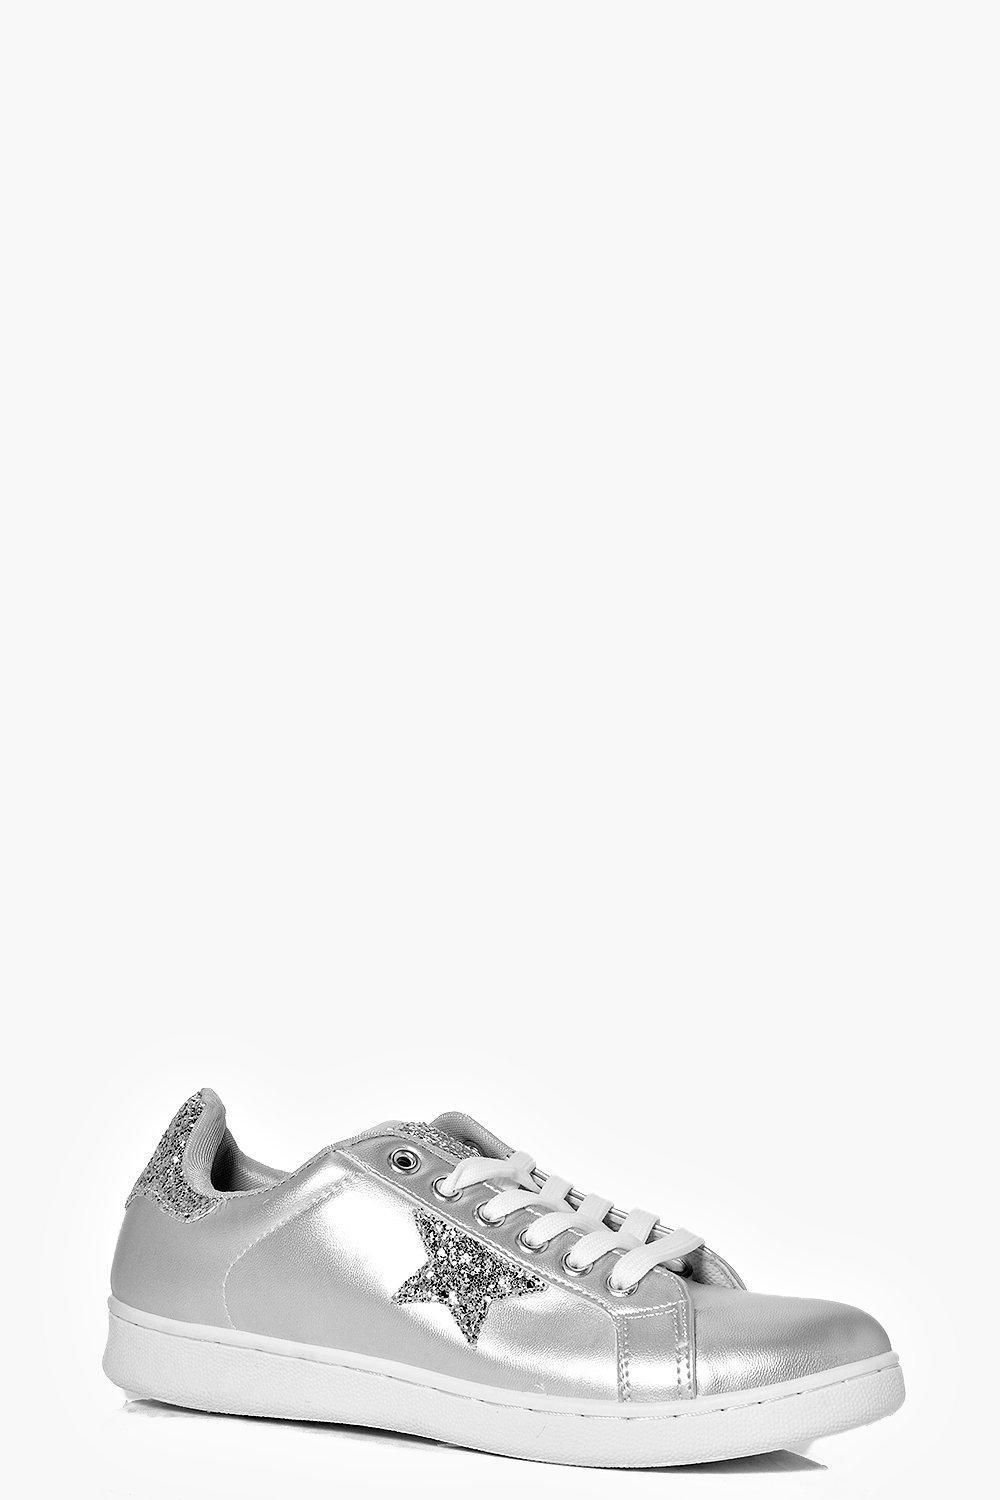 Star Detail Lace Up Trainer Silver - predominant colour: silver; occasions: casual; material: leather; heel height: flat; toe: round toe; style: trainers; finish: metallic; pattern: plain; season: s/s 2016